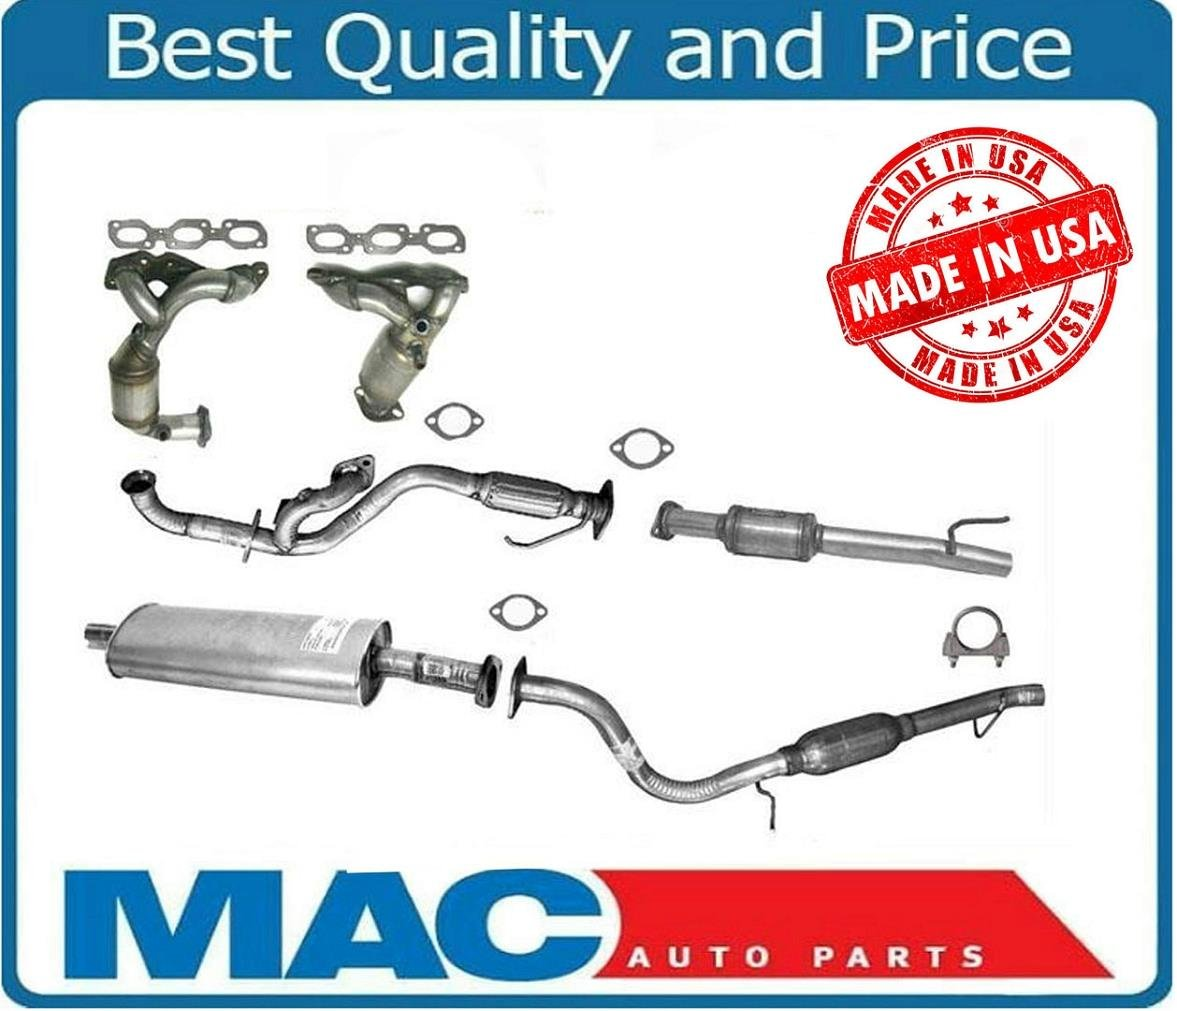 amazoncom mac auto parts 142909 full complete exhaust system